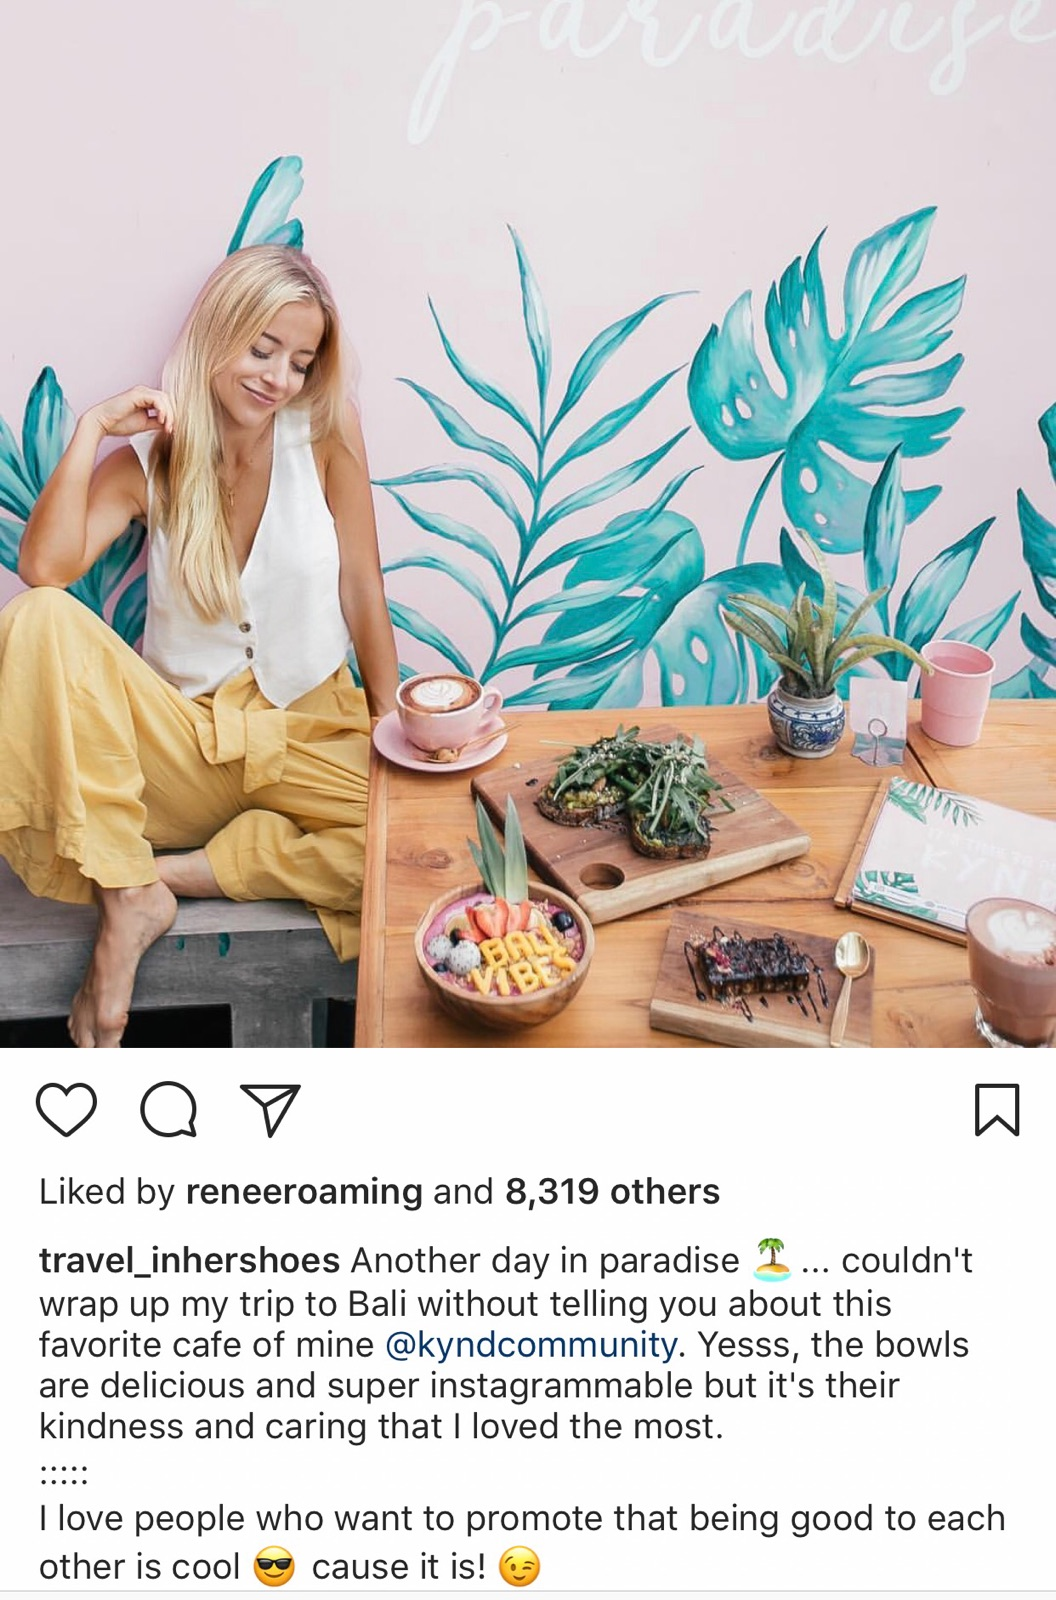 Travel_in_her_shoes_marketing_example.jpg